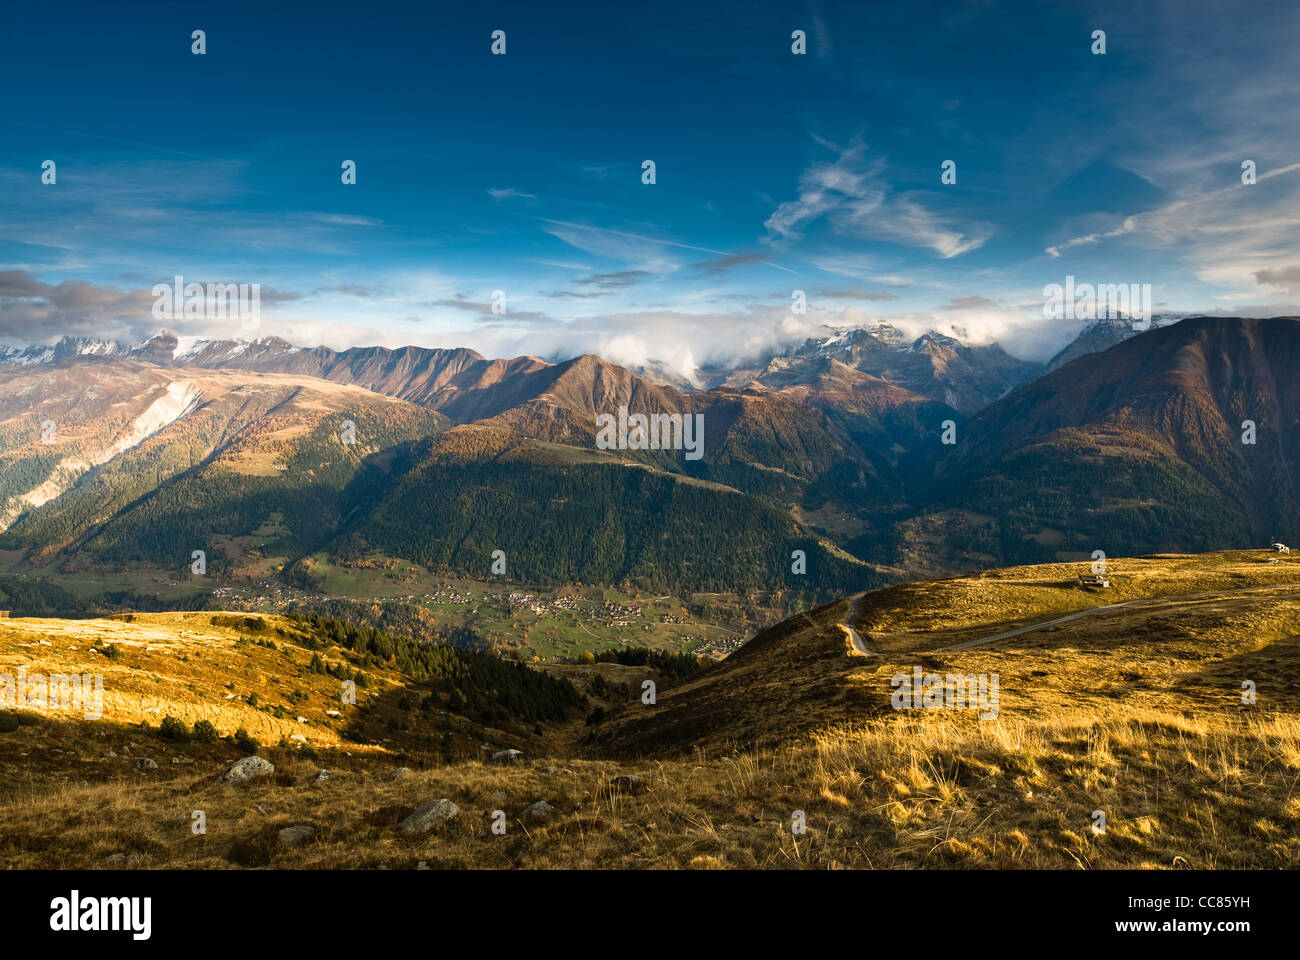 View from fiescheralp, wallis, switzerland at sunset. Stock Photo